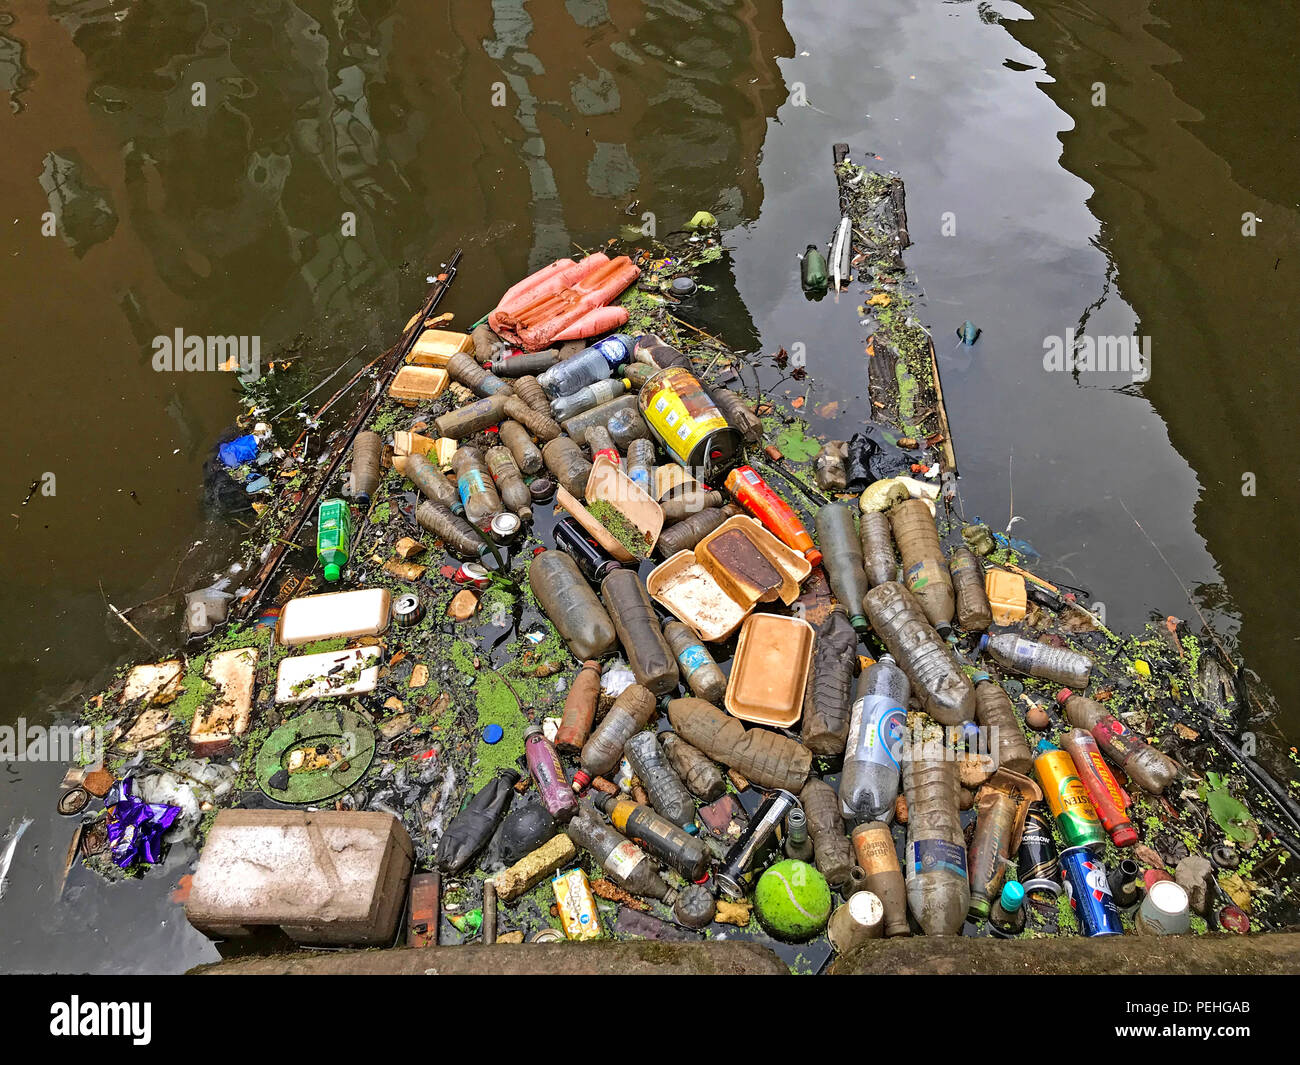 Plastic waste and refuse, in a canal, Castlefields, city centre, Manchester, North West England, UK - Stock Image